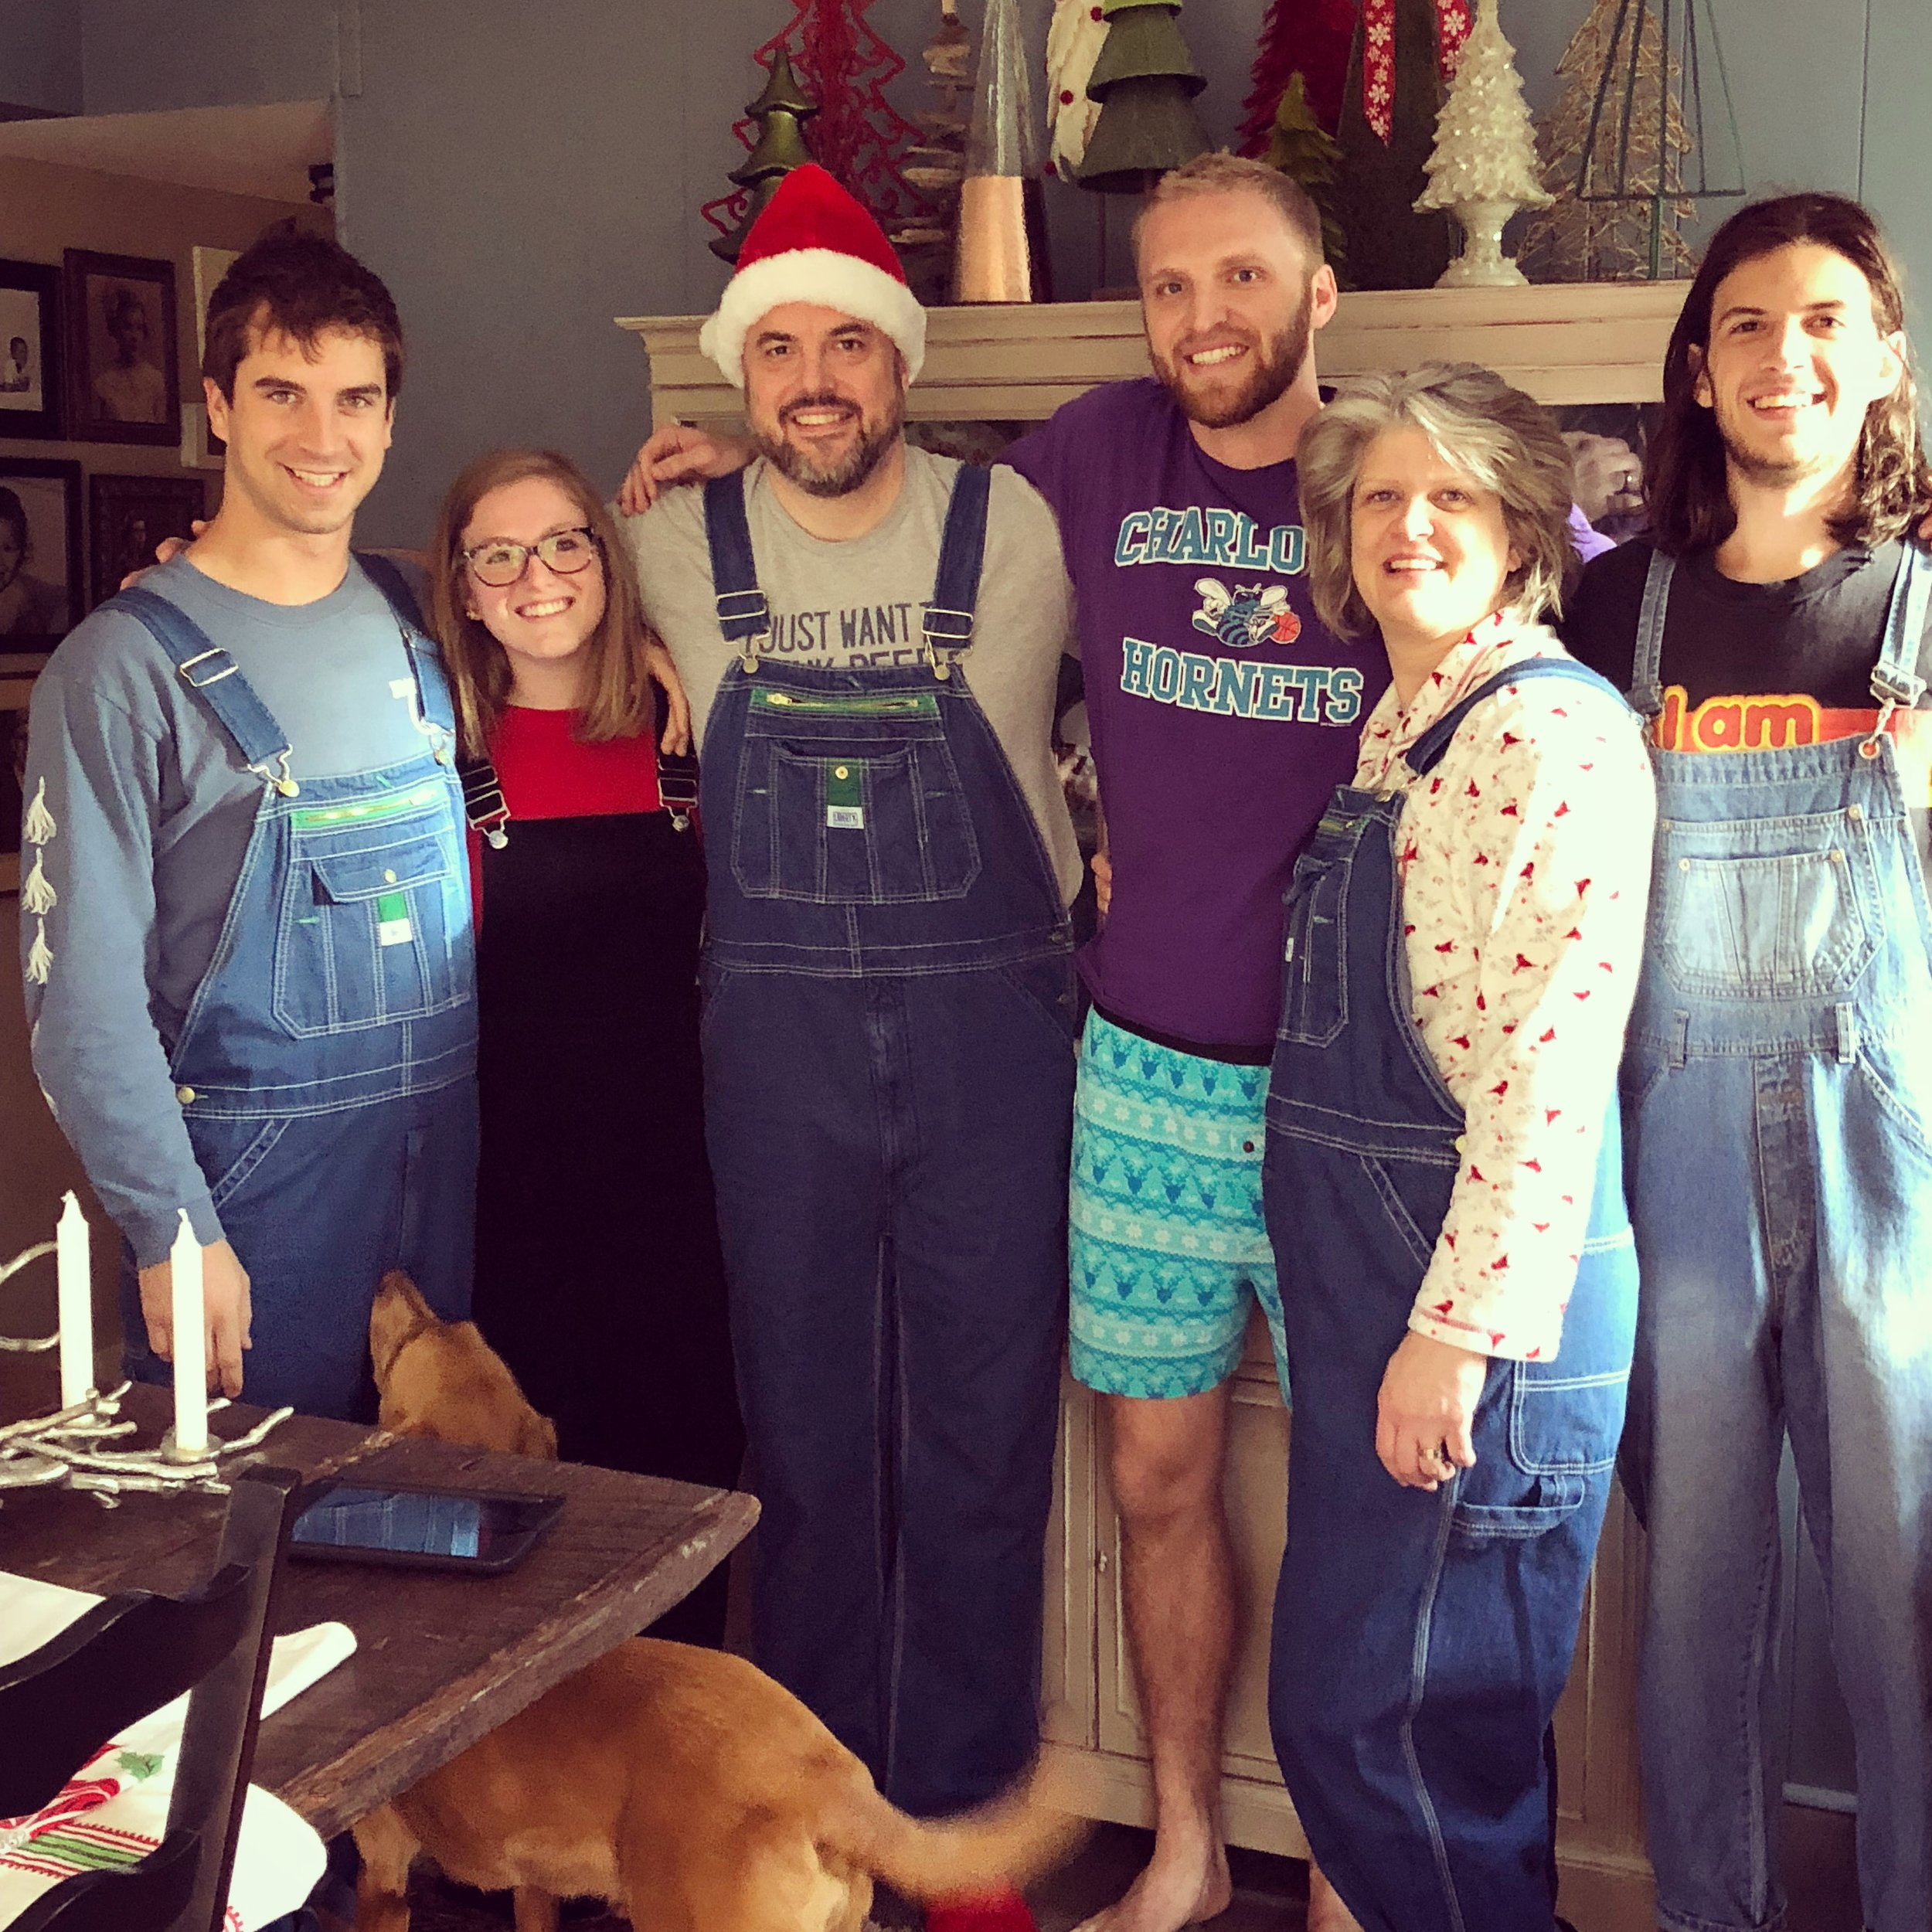 All of us in our overalls on Christmas morning